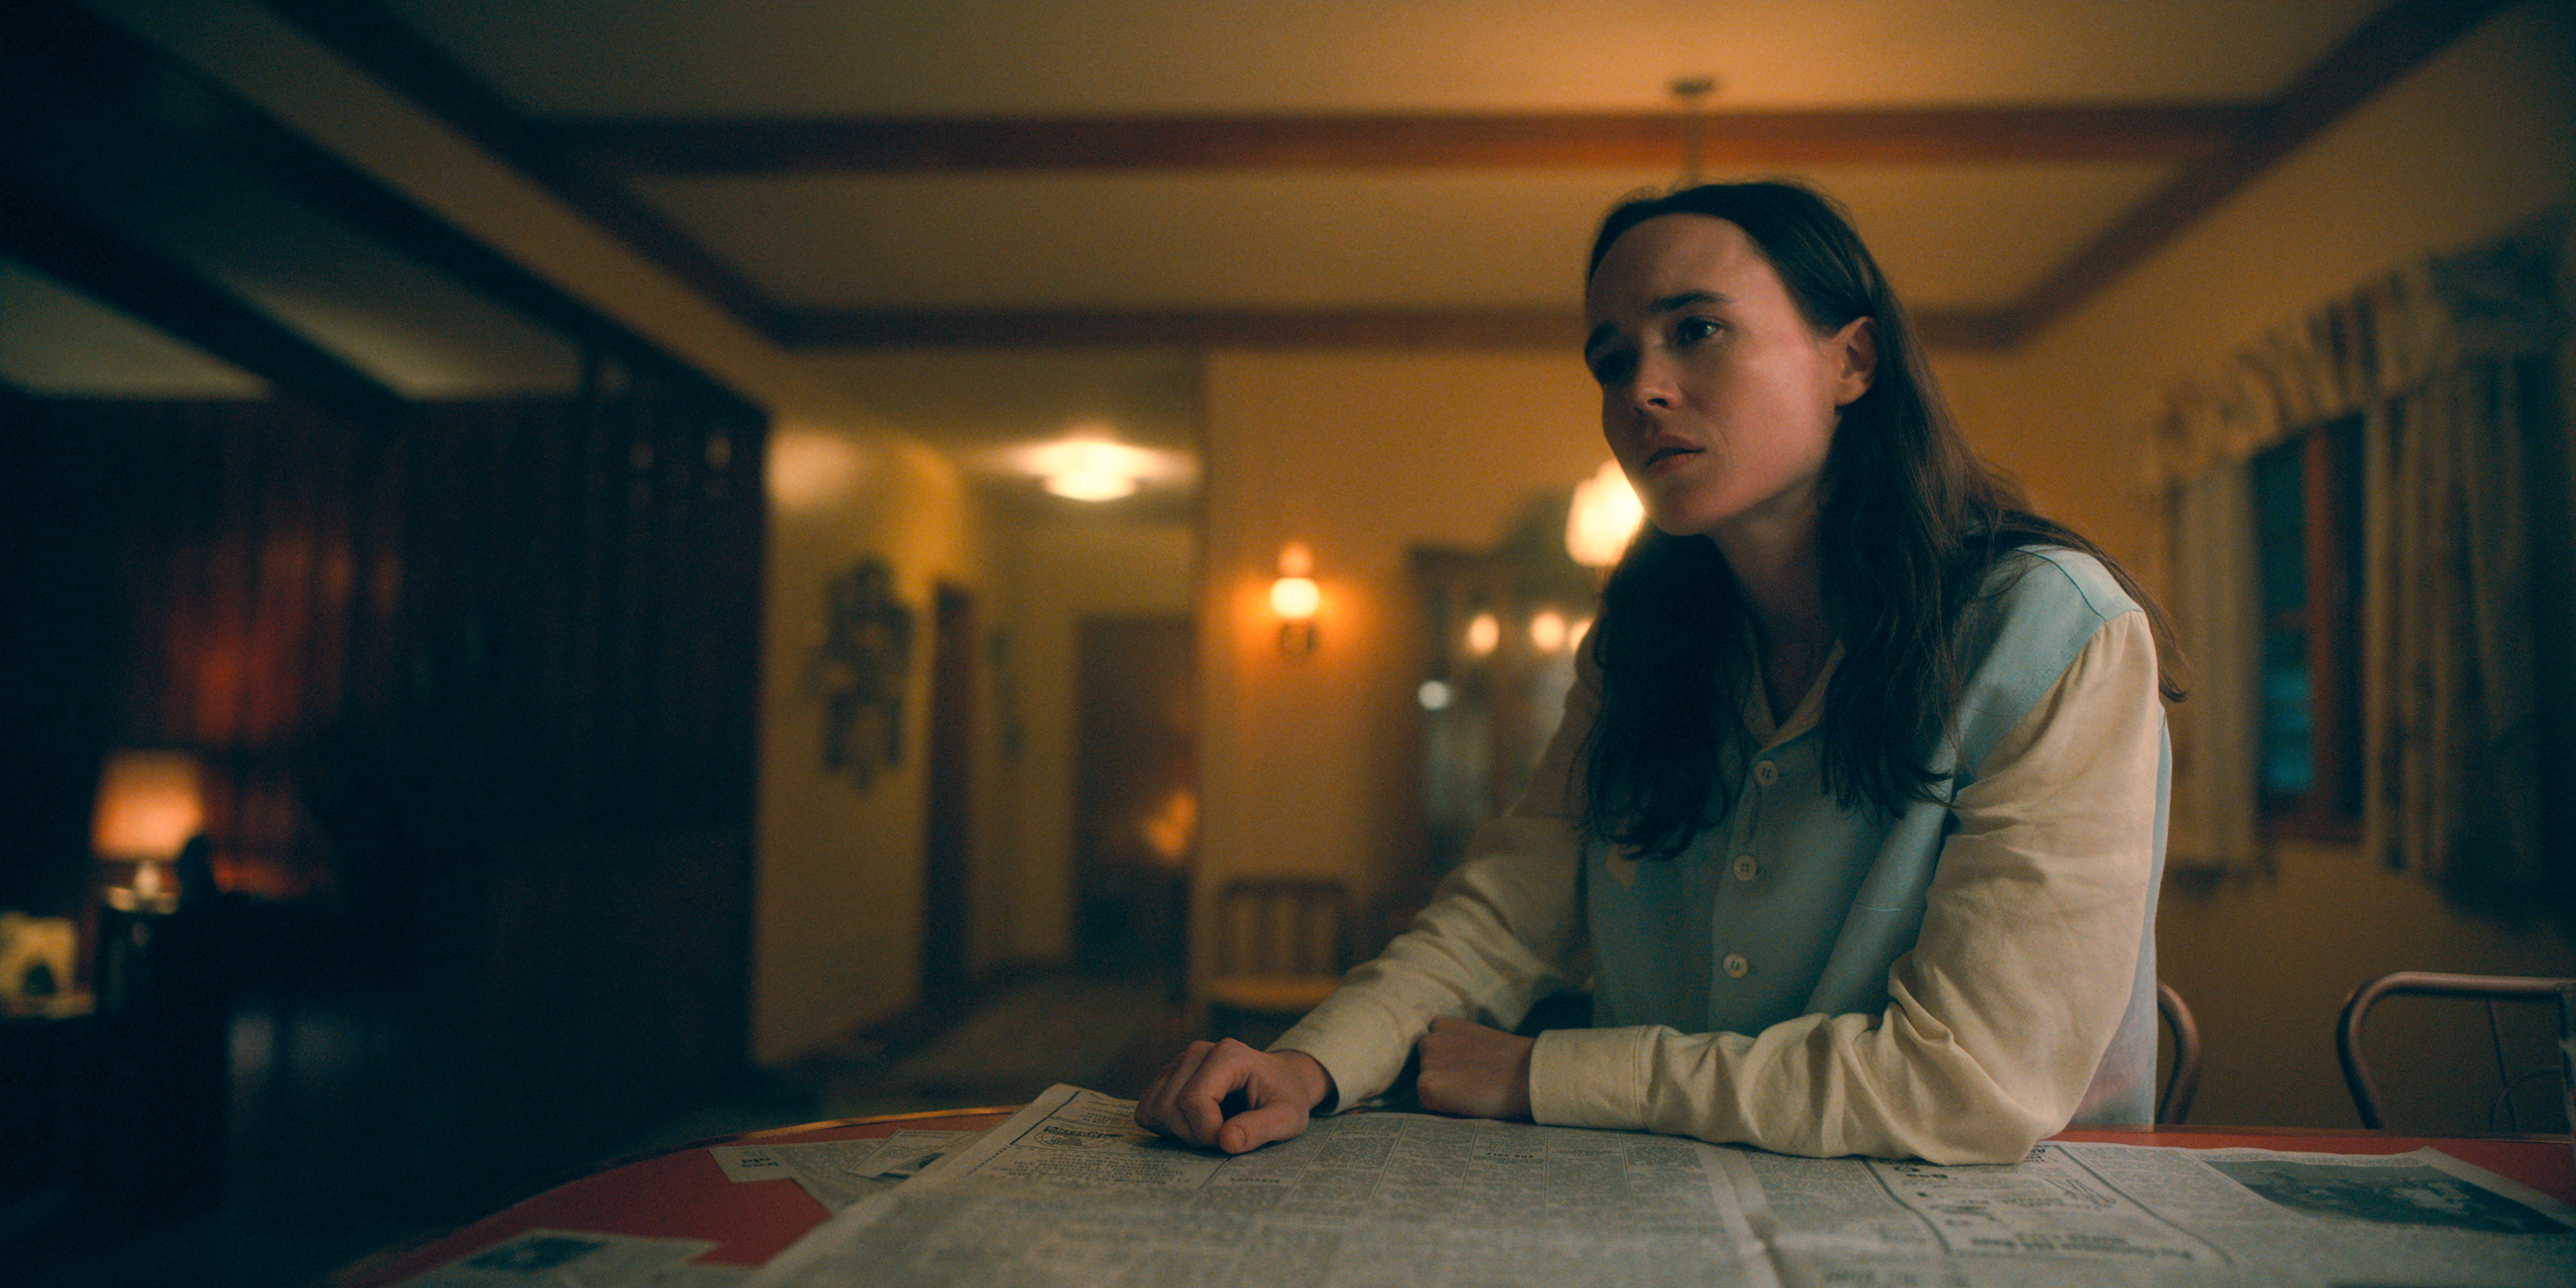 Ellen Page as Vanya in The Umbrella Academy